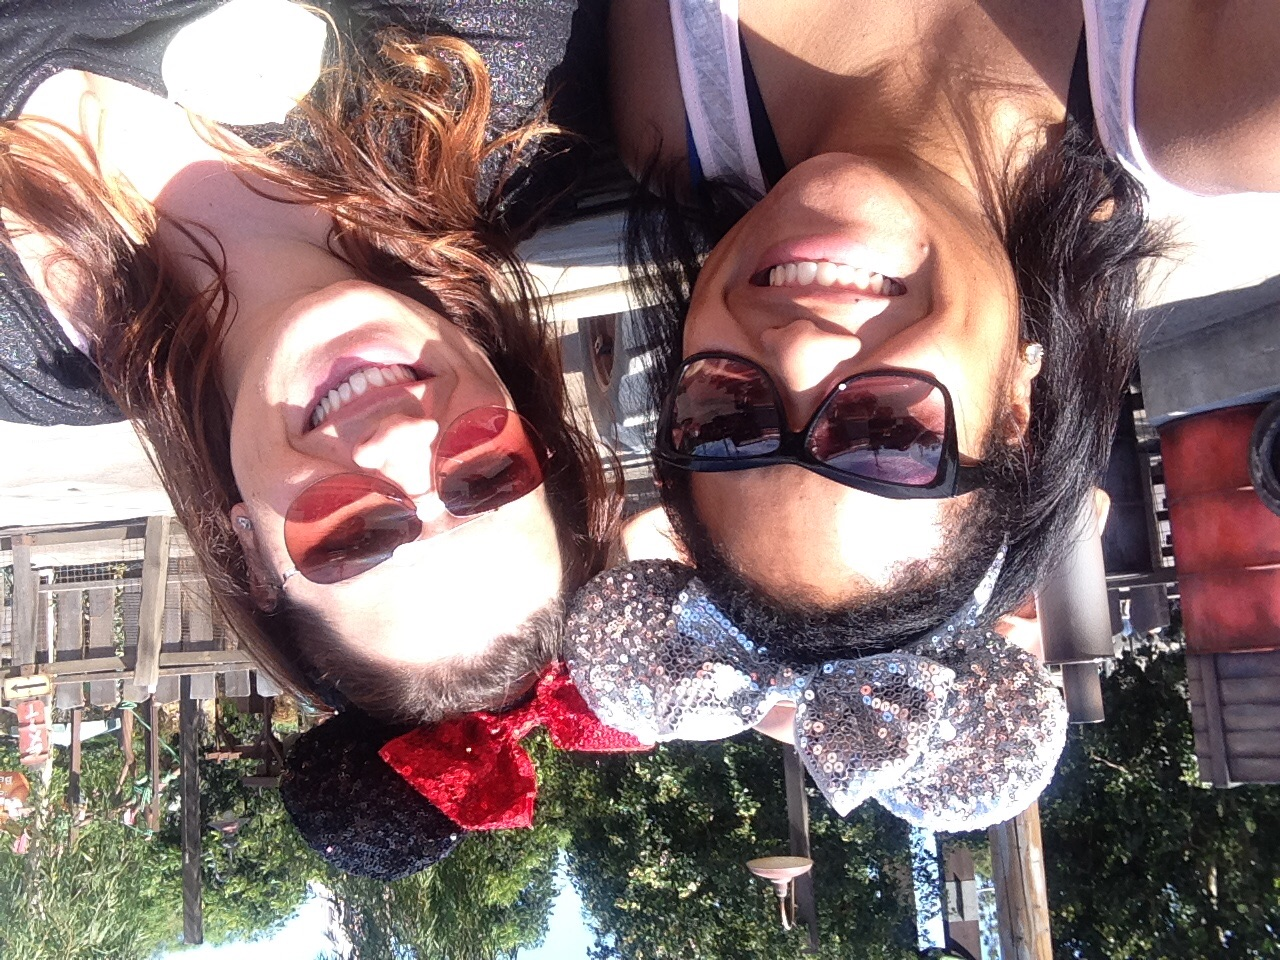 My friend Amanda and I wenton a girls' weekend to Disneyland! Getting inspired and refreshed!